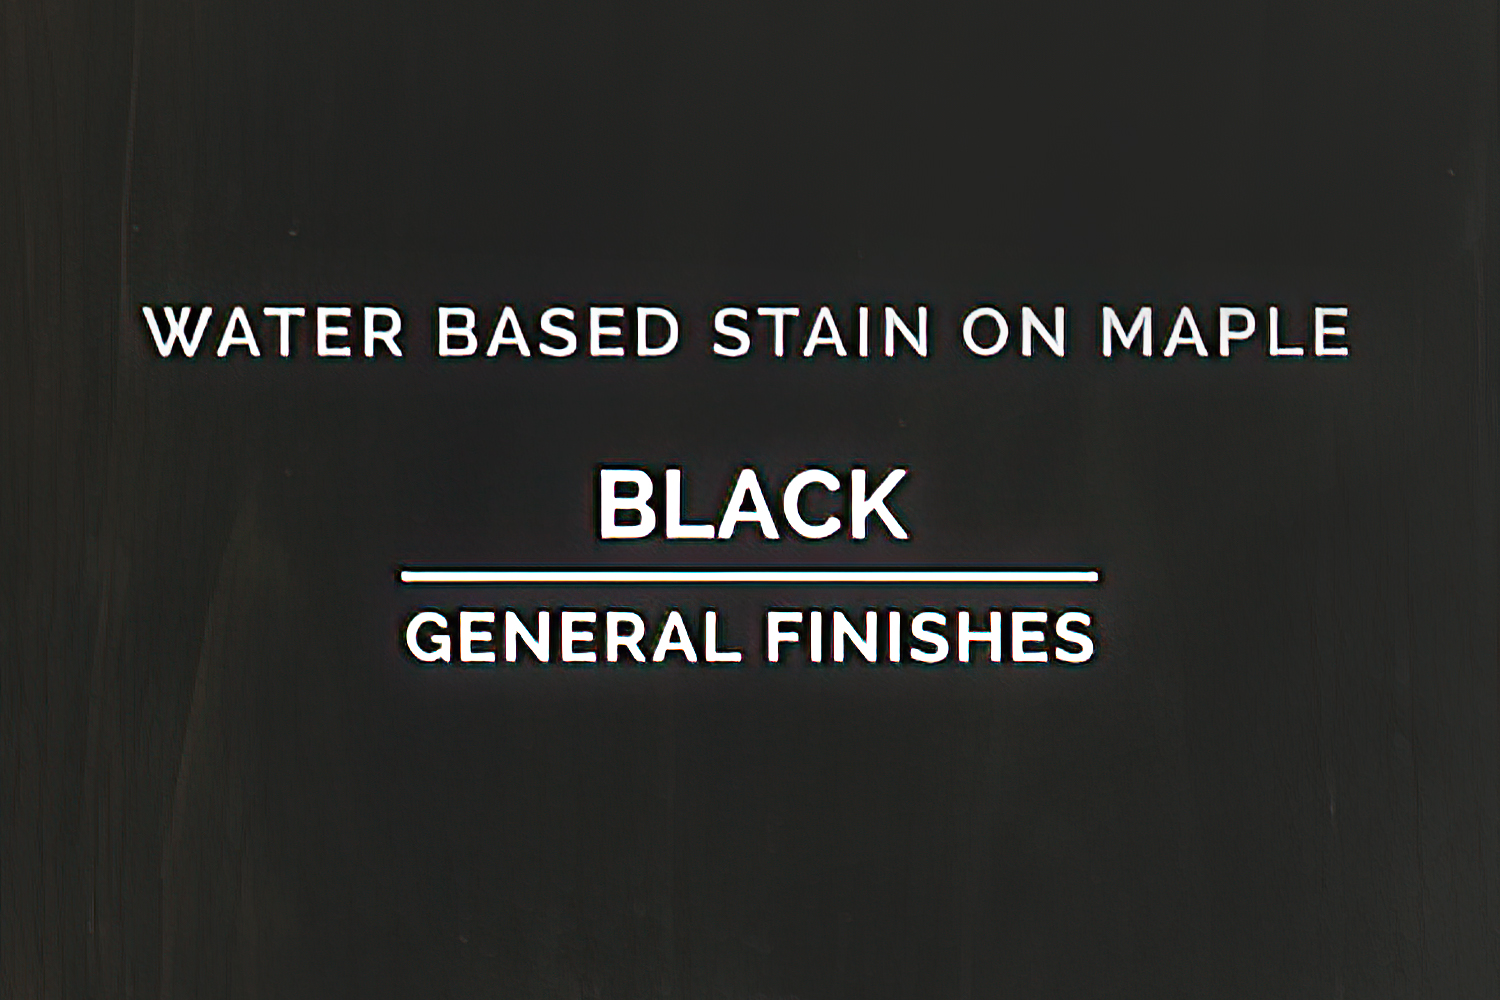 General Finishes Black Stain Water Based